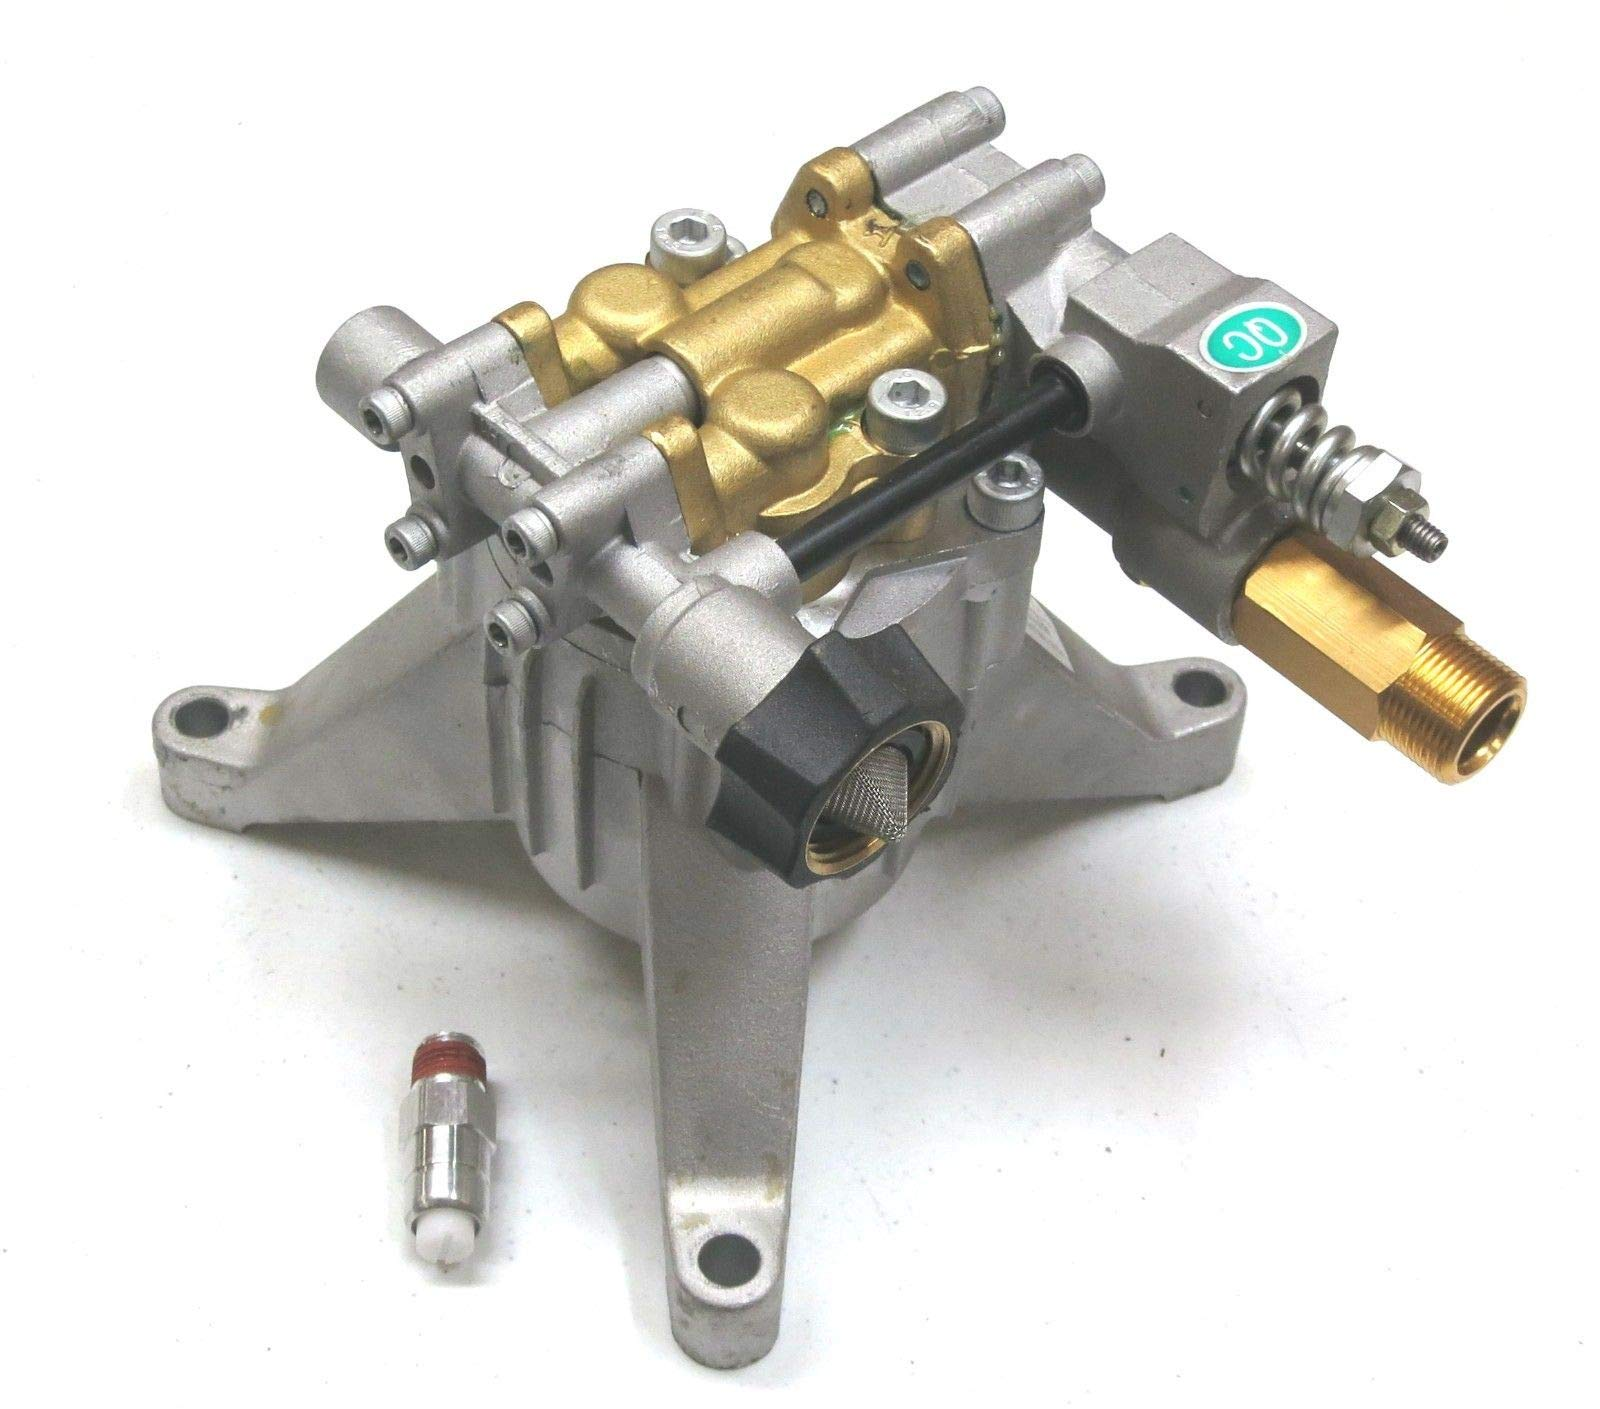 3100 PSI Upgraded POWER PRESSURE WASHER WATER PUMP Simpson MSV3024 by The ROP Shop by Himore